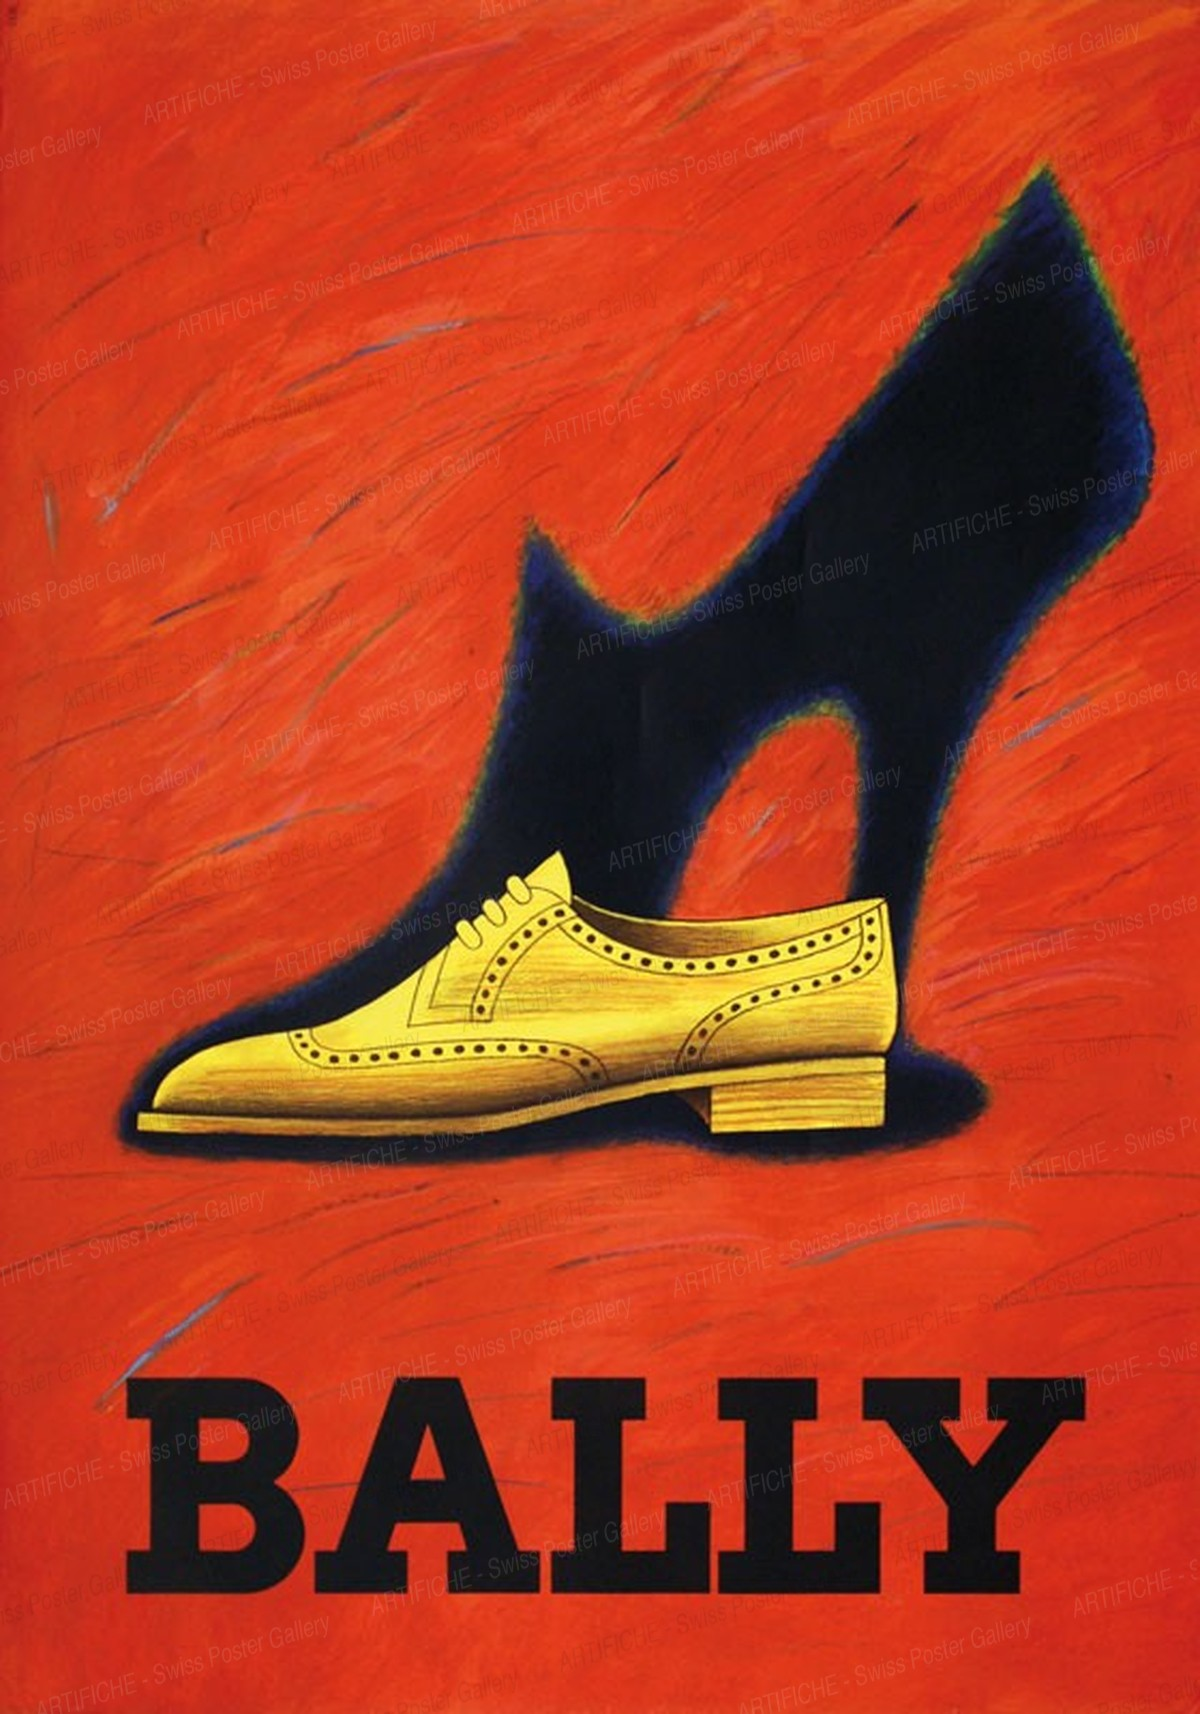 Bally Shoes, Willi Rieser